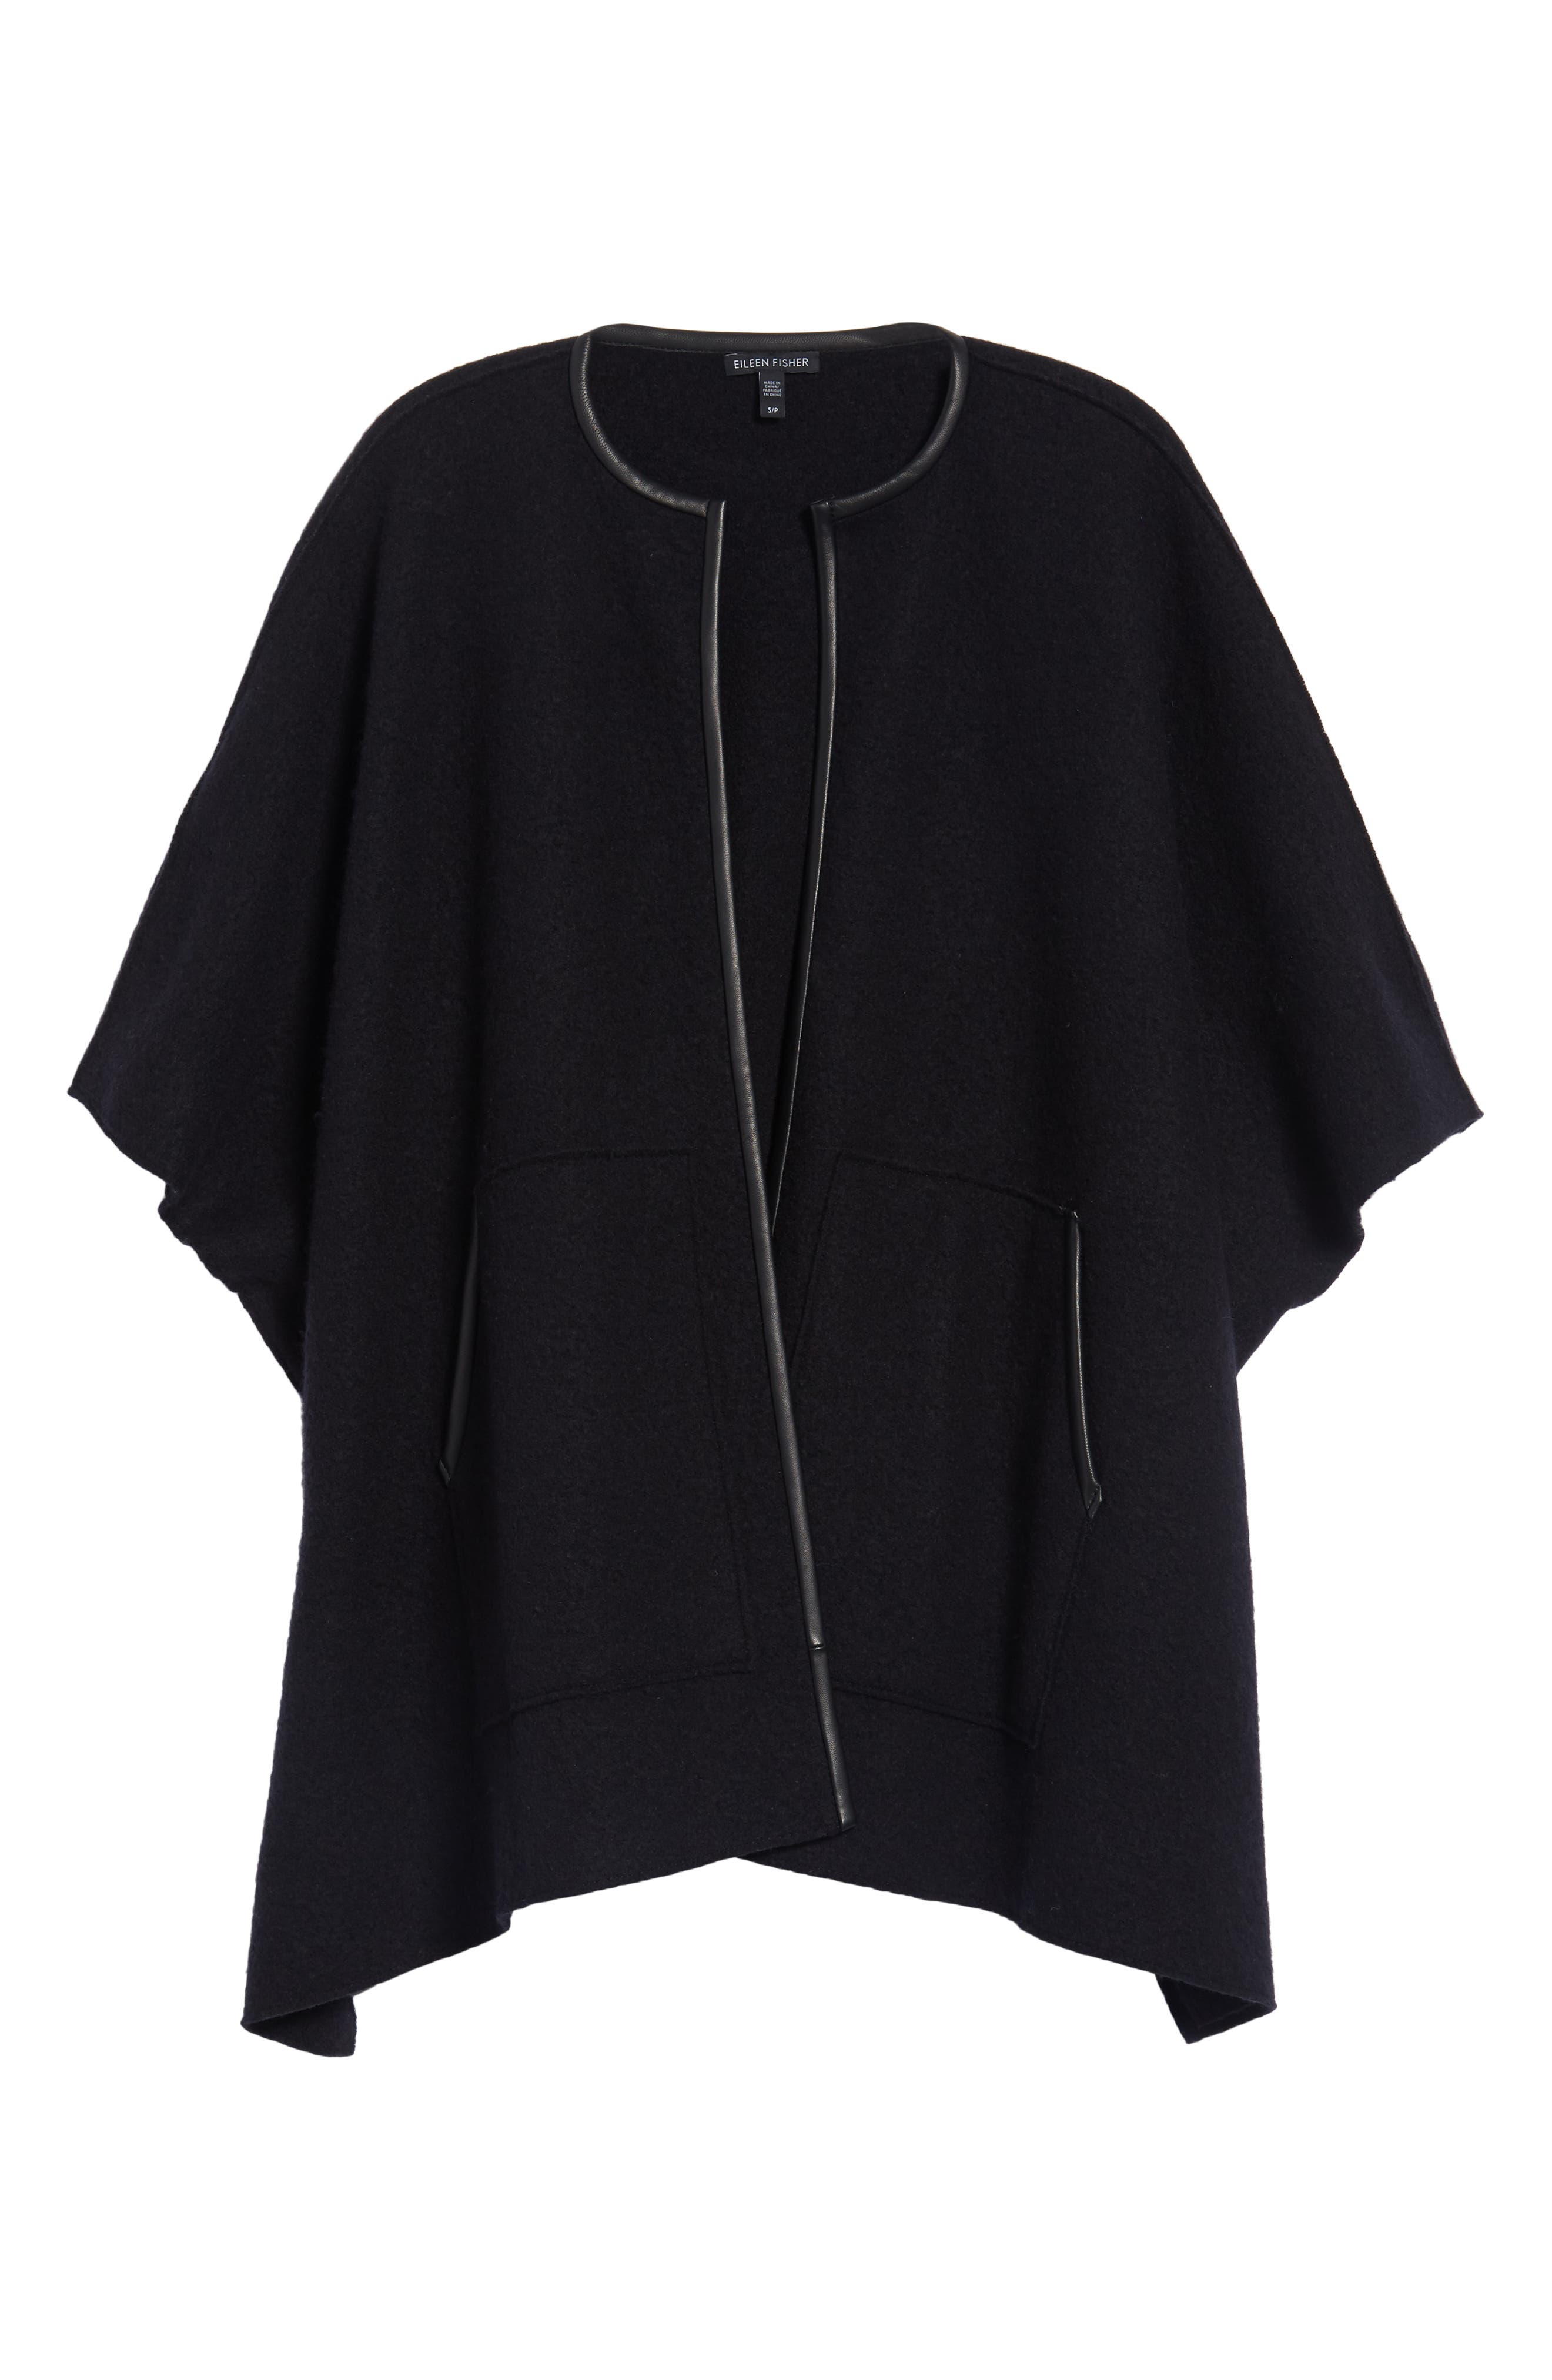 Boiled Wool Poncho Jacket with Leather Trim,                             Alternate thumbnail 6, color,                             BLACK